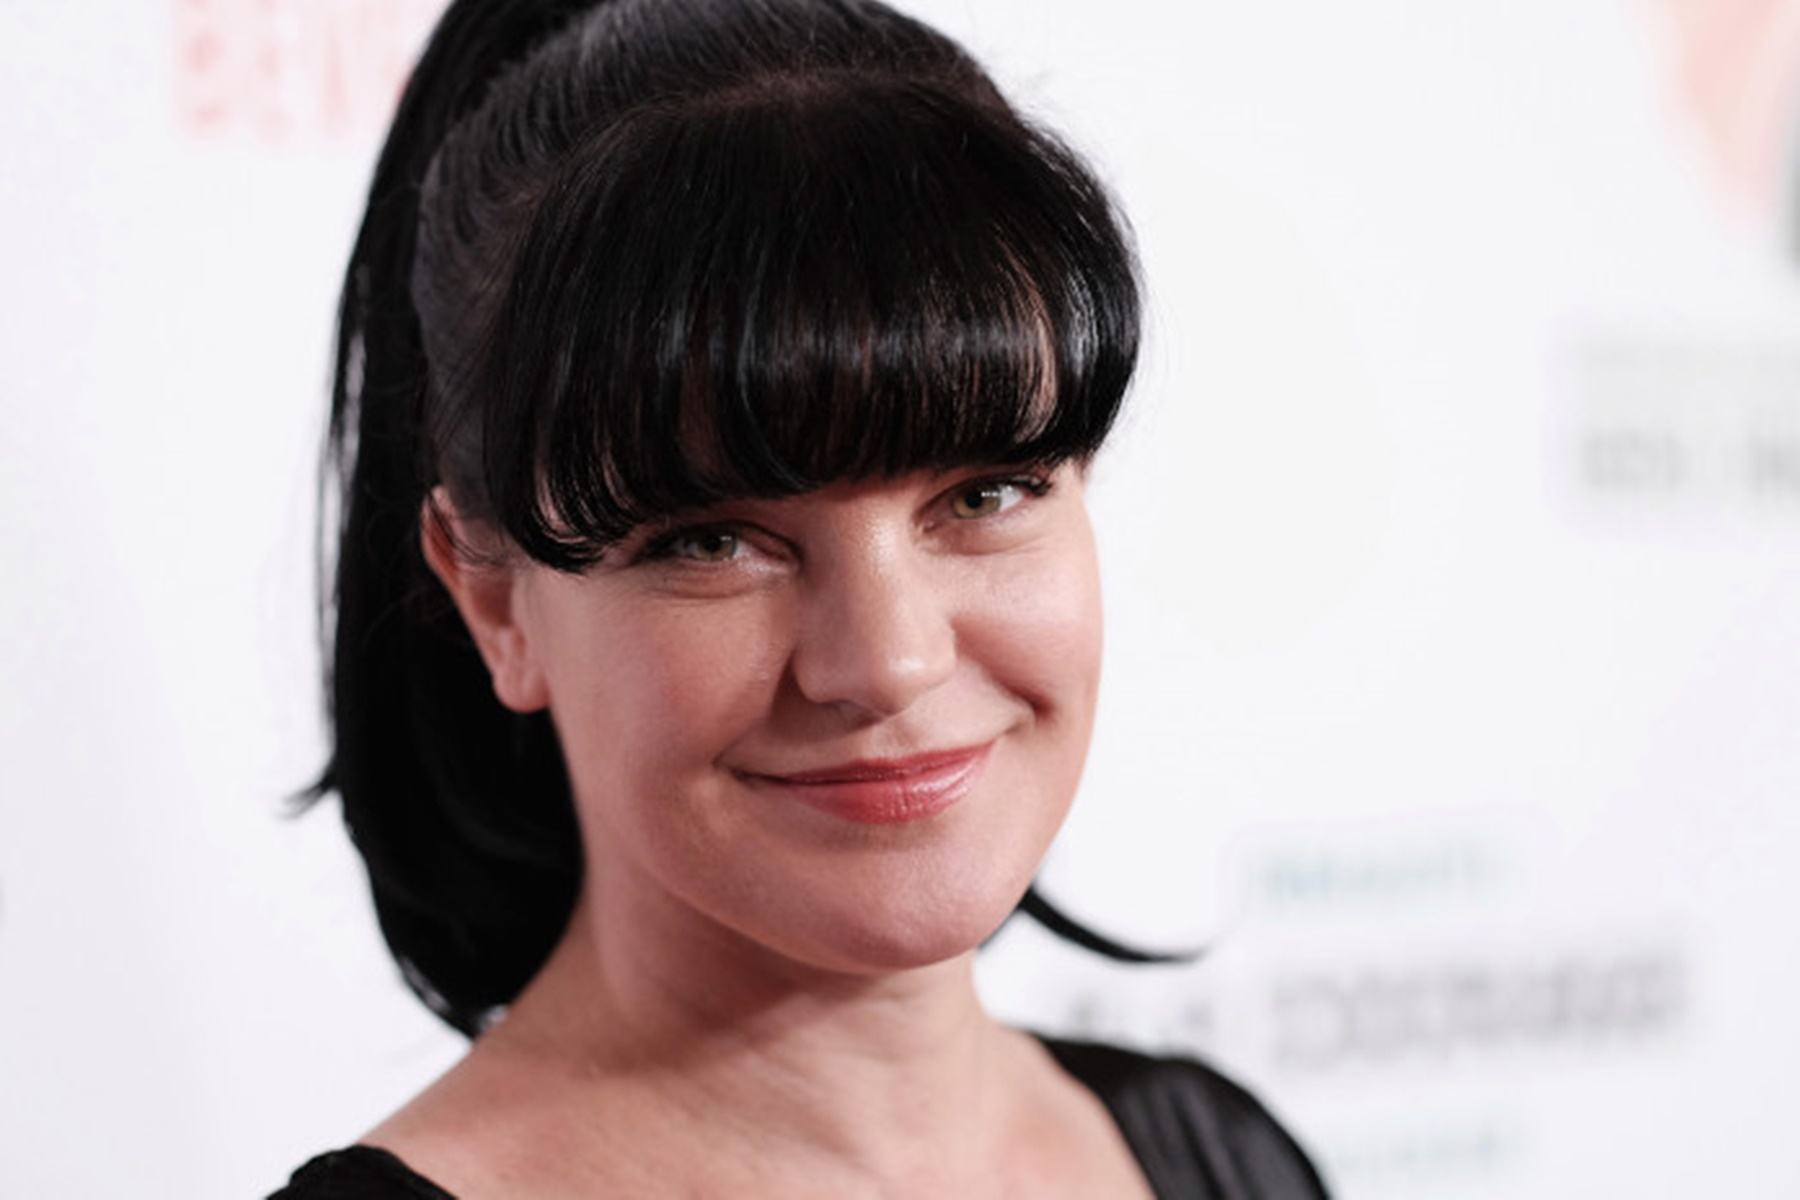 pauley-perrette-posts-picture-of-bruised-eye-and-slams-mark-harmon-star-ncis-for-giving-her-nightmares